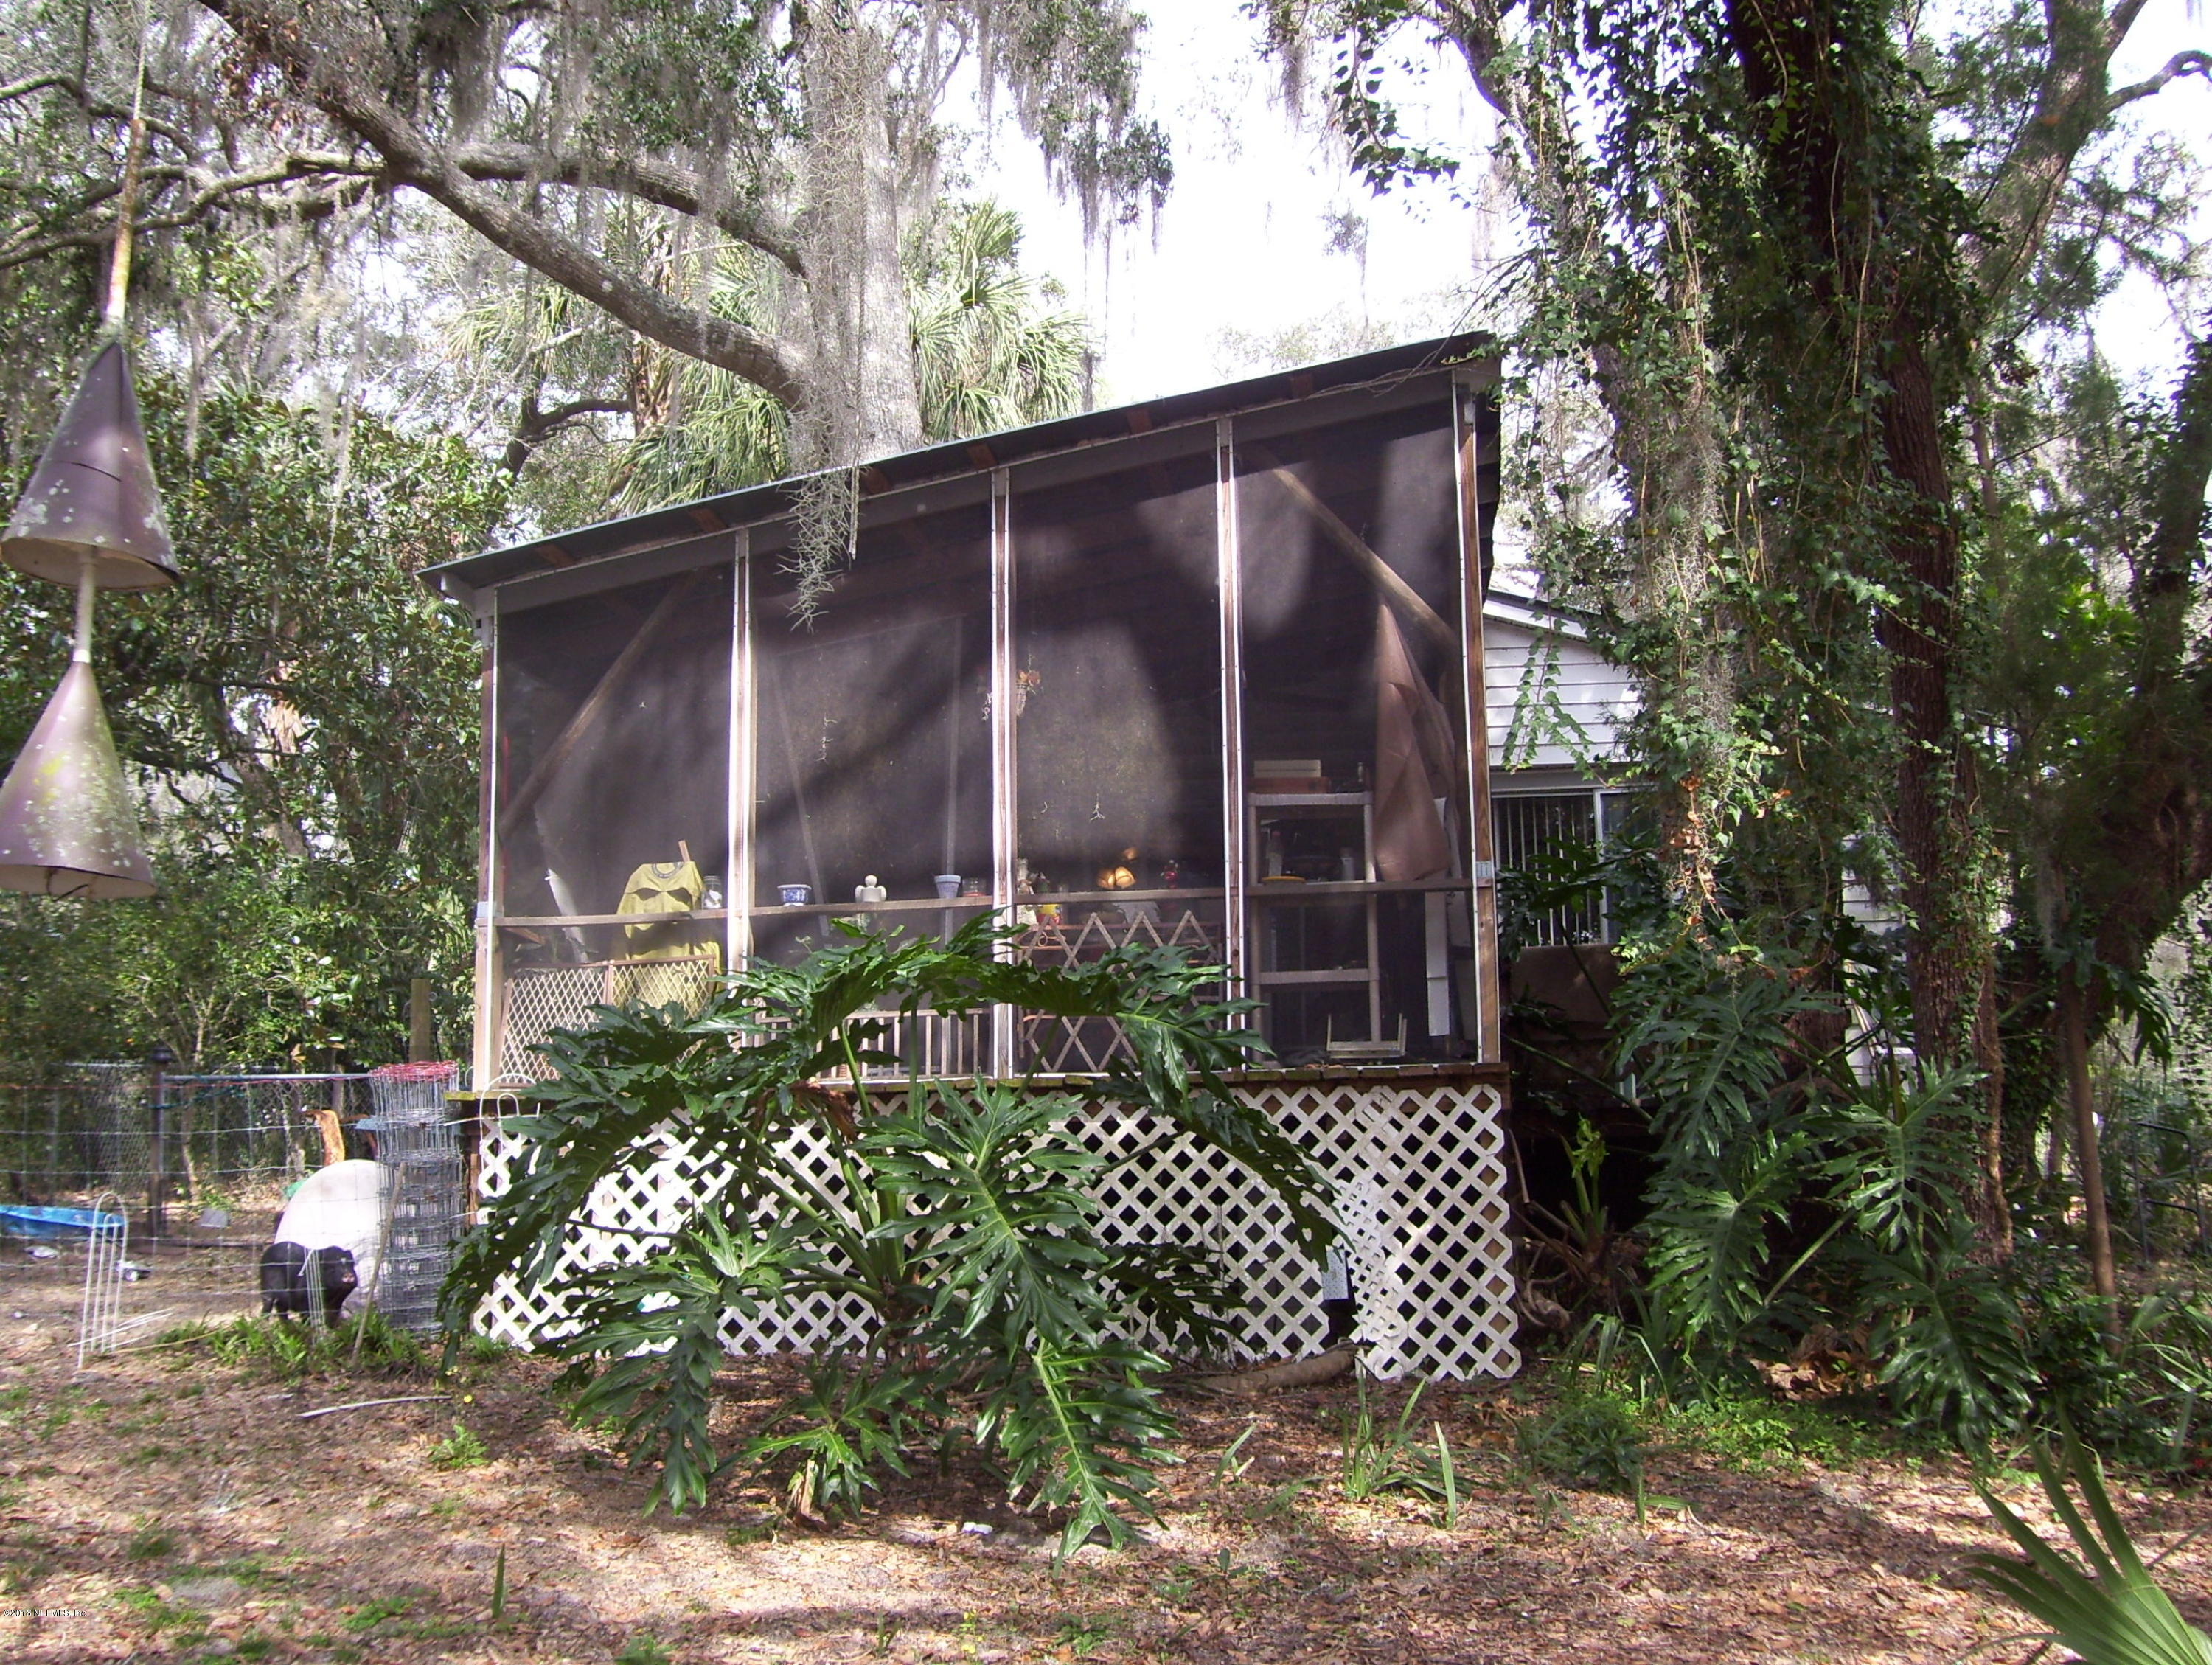 313 WHITE SANDS BEACHES, HAWTHORNE, FLORIDA 32640, 3 Bedrooms Bedrooms, ,2 BathroomsBathrooms,Residential - mobile home,For sale,WHITE SANDS BEACHES,920766